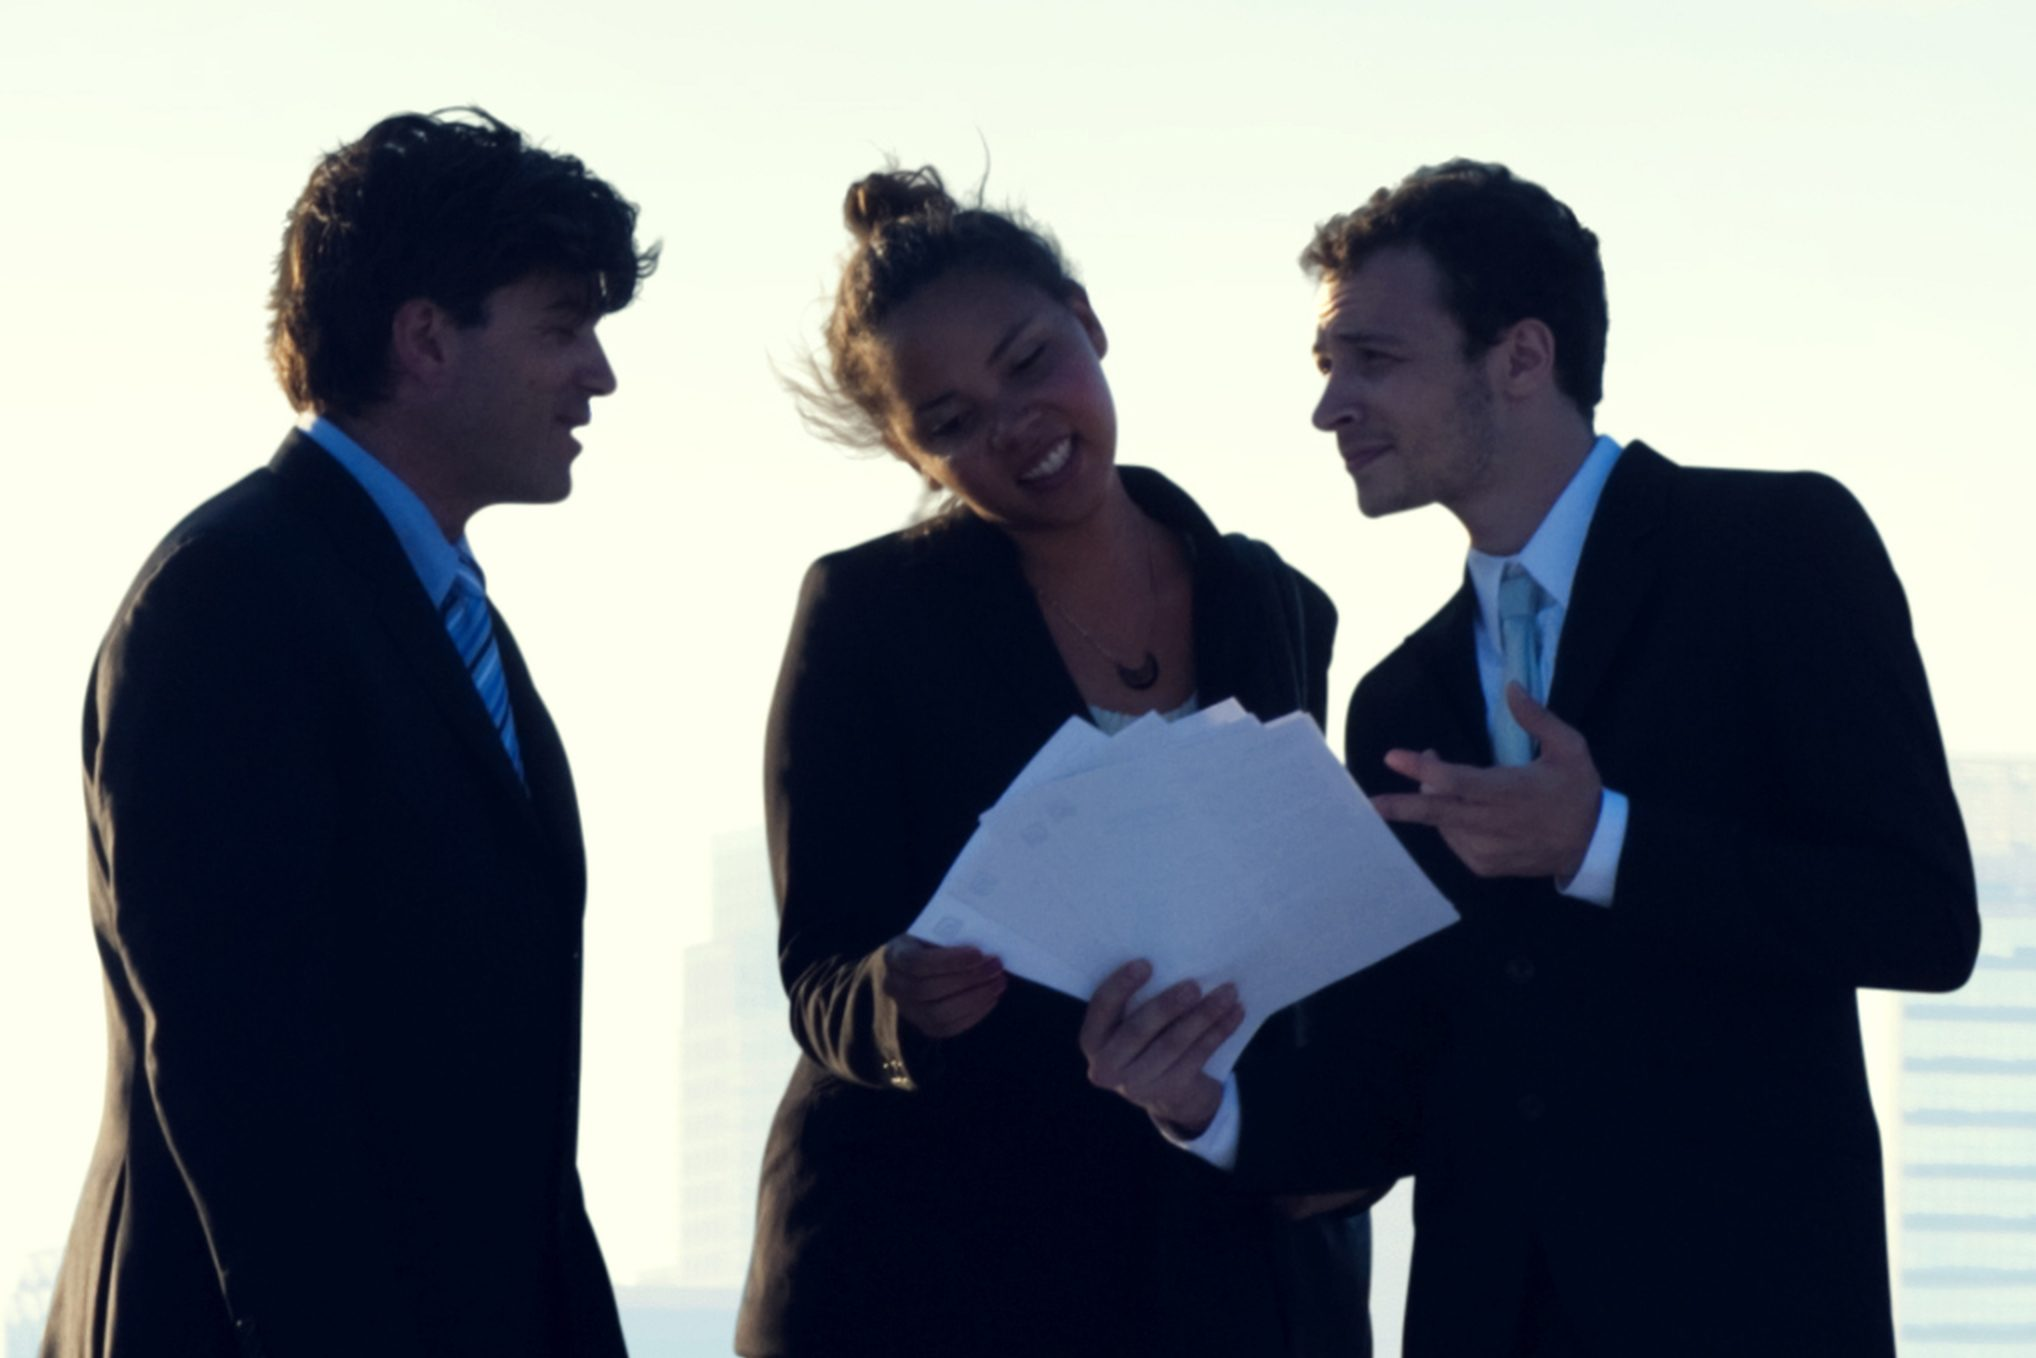 Three business professionals talking